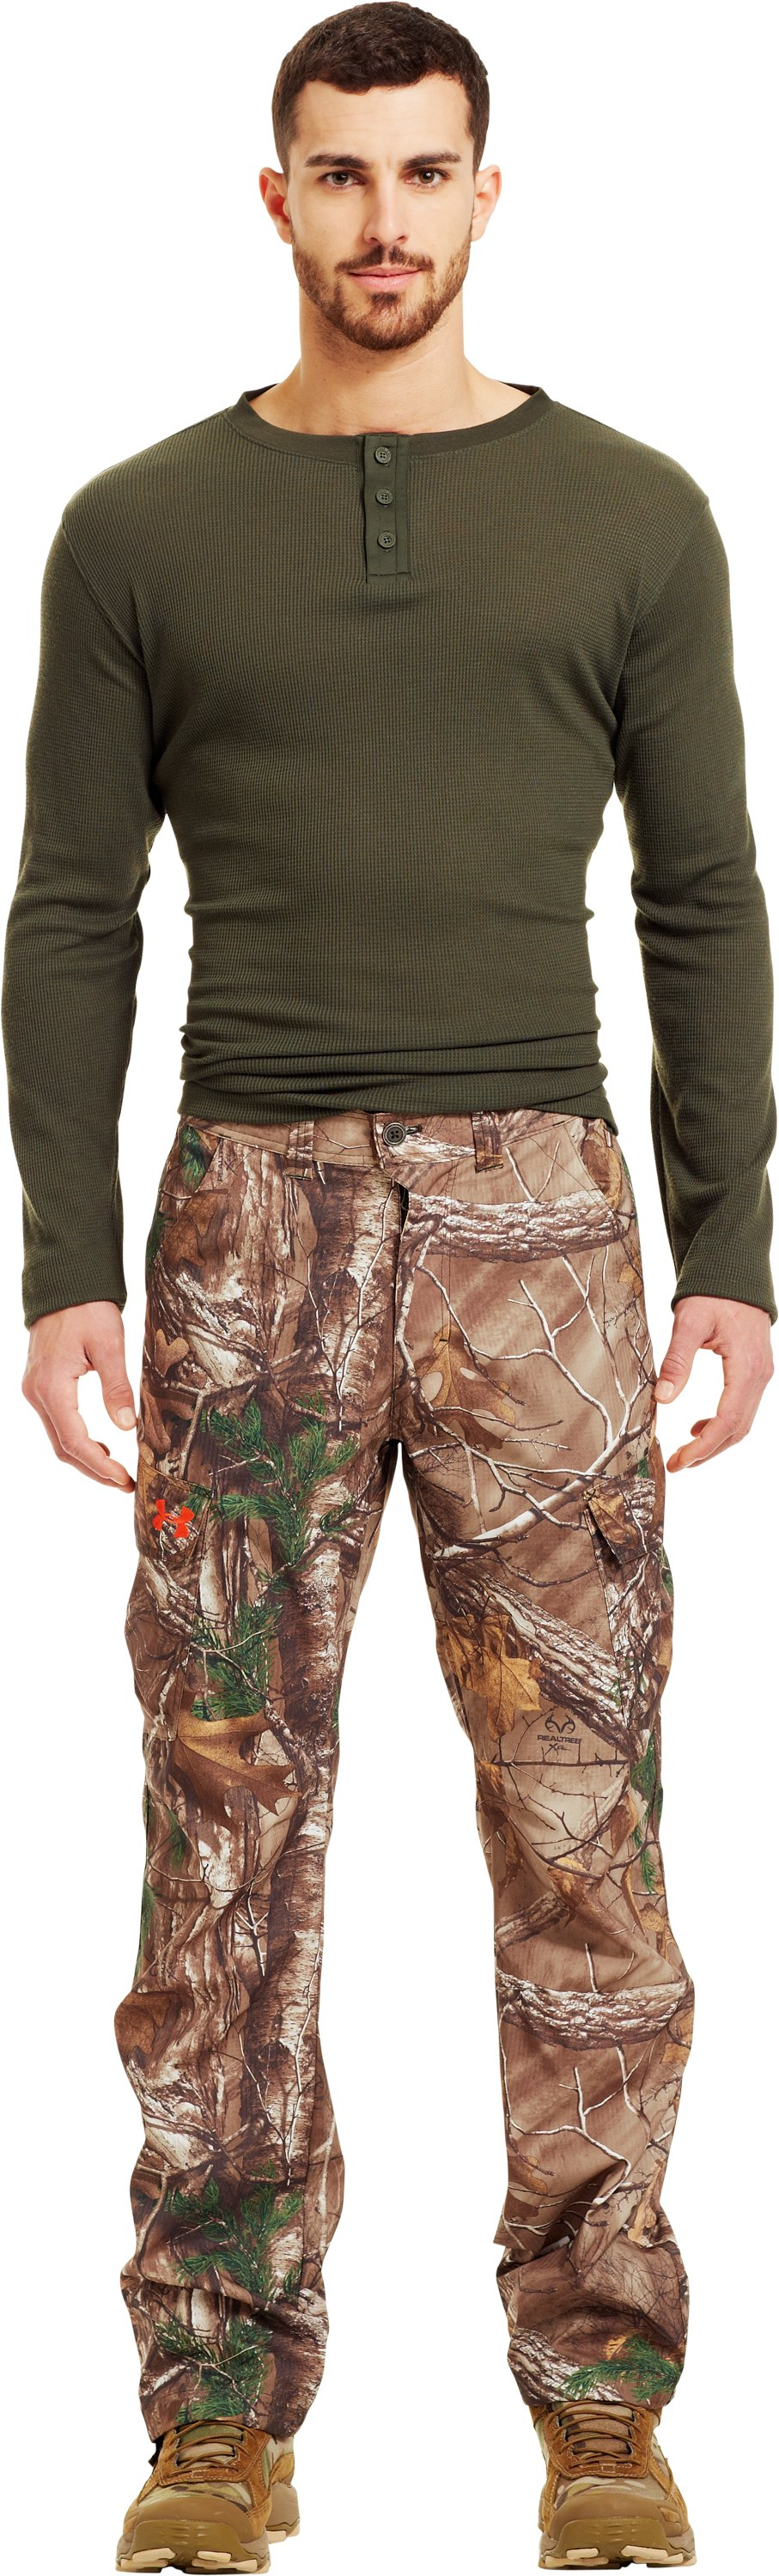 Men's UA Performance Field Pants, Mossy Oak Break-Up Infinity